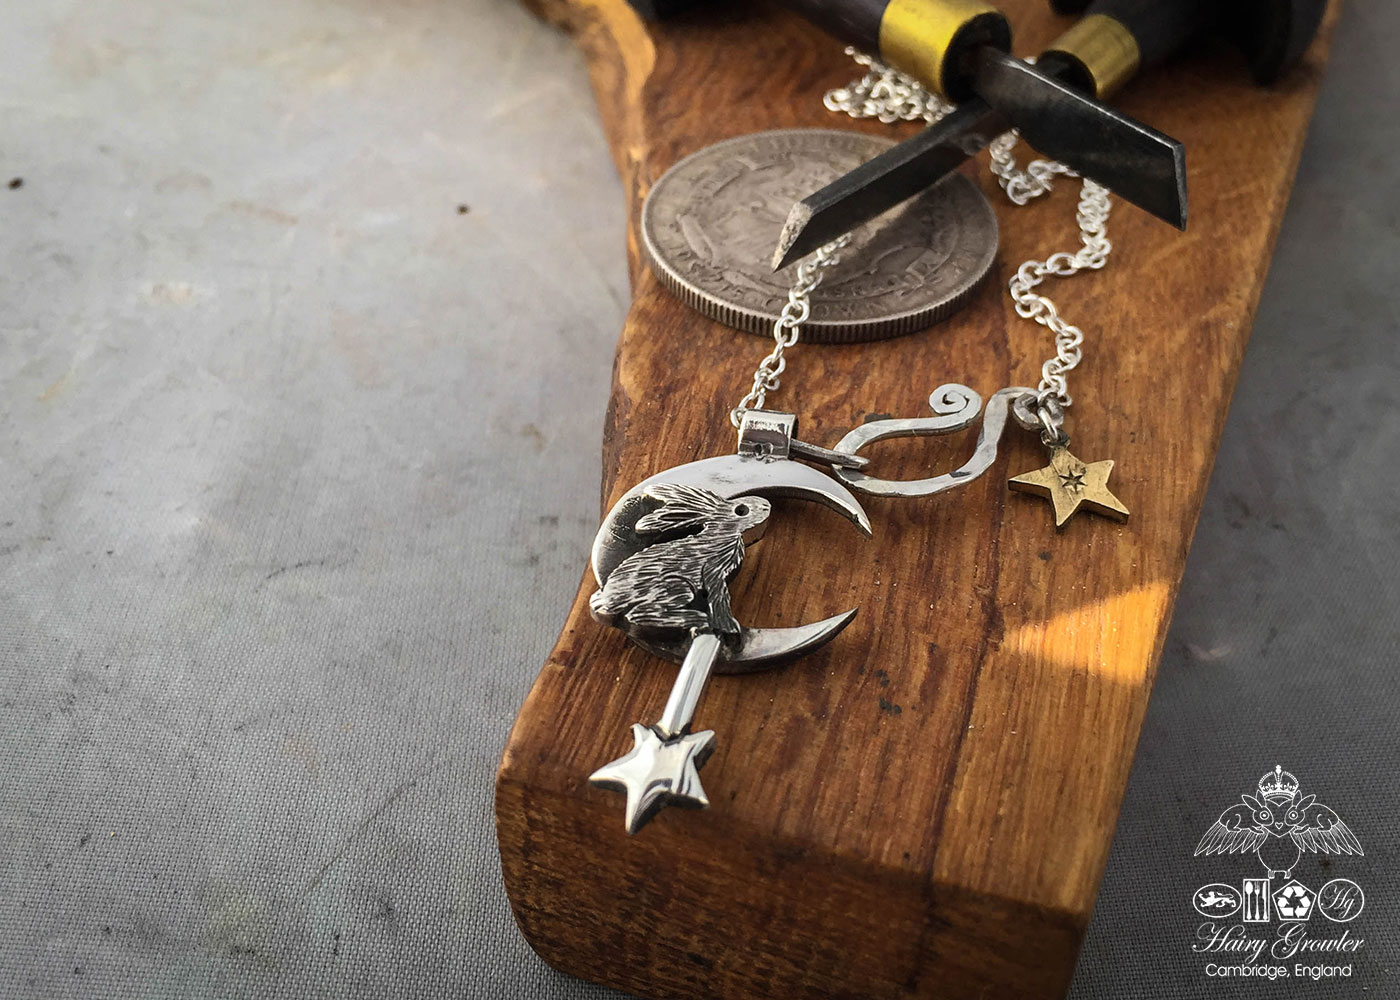 handcrafted and recycled sterling silver moon, star and hare charm for a tree sculpture, necklace or bracelet